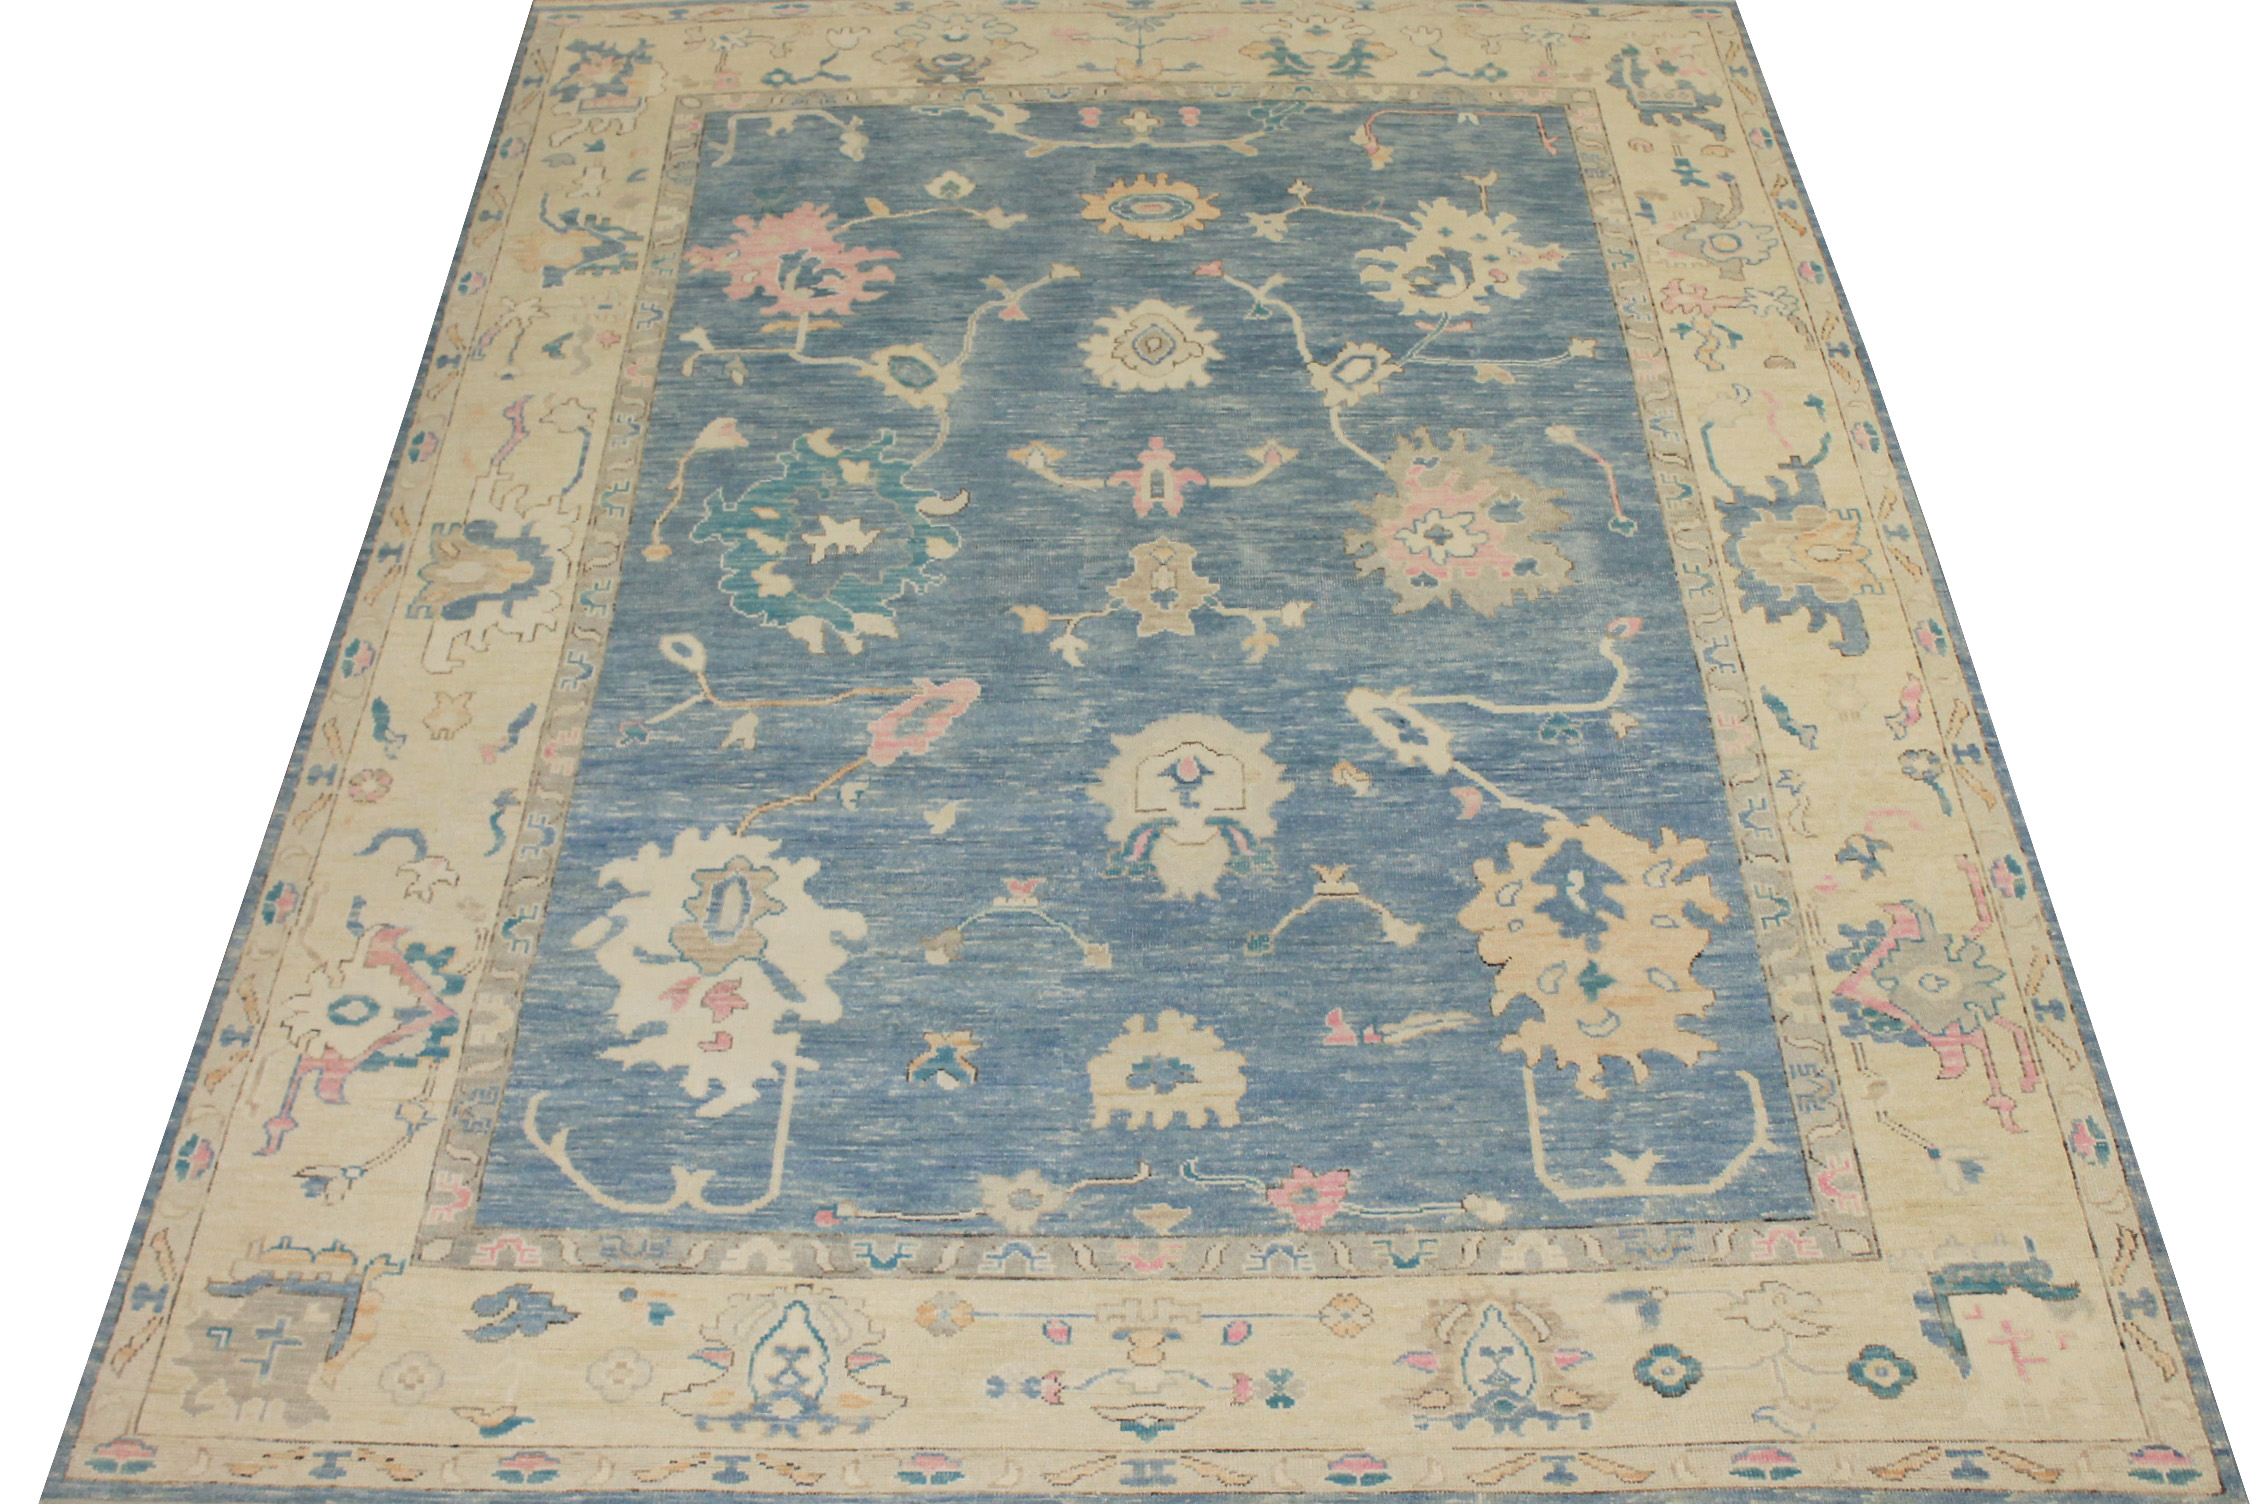 9x12 Oushak Hand Knotted Wool Area Rug - MR024431